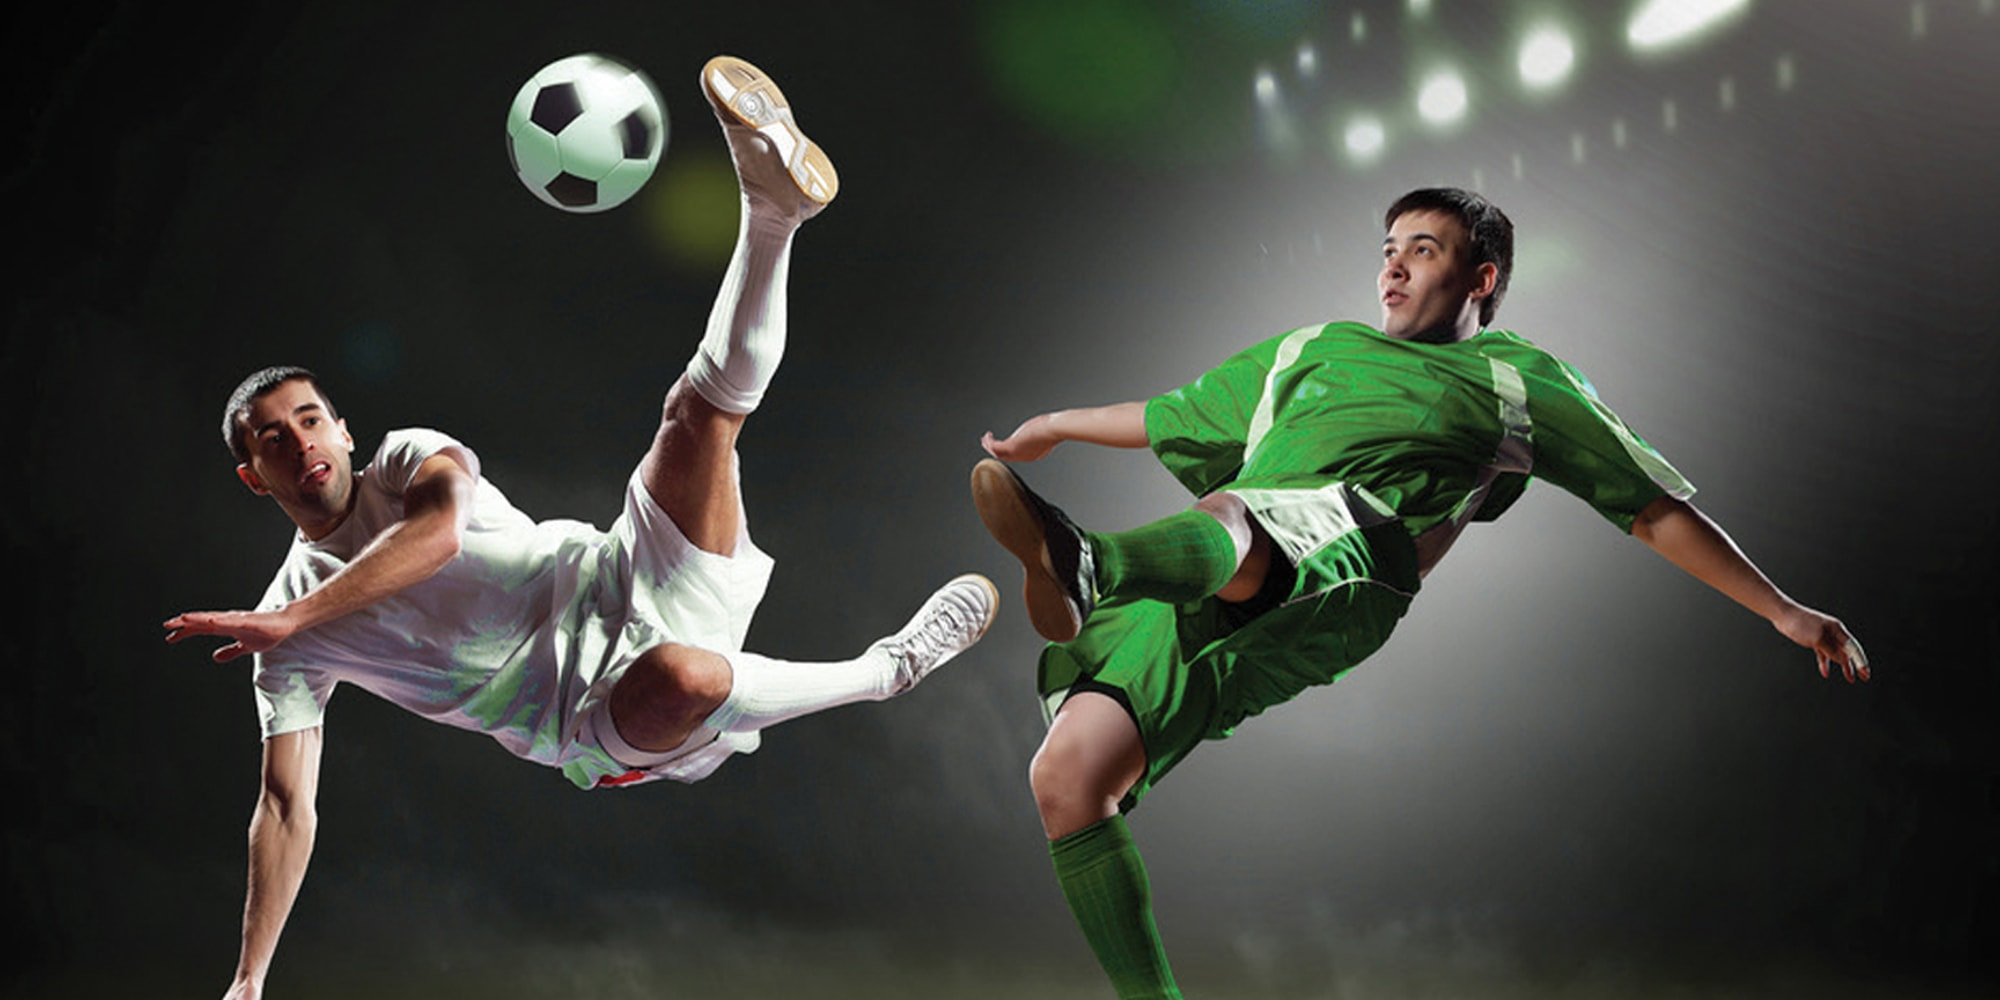 SportsProduction_2000x1000